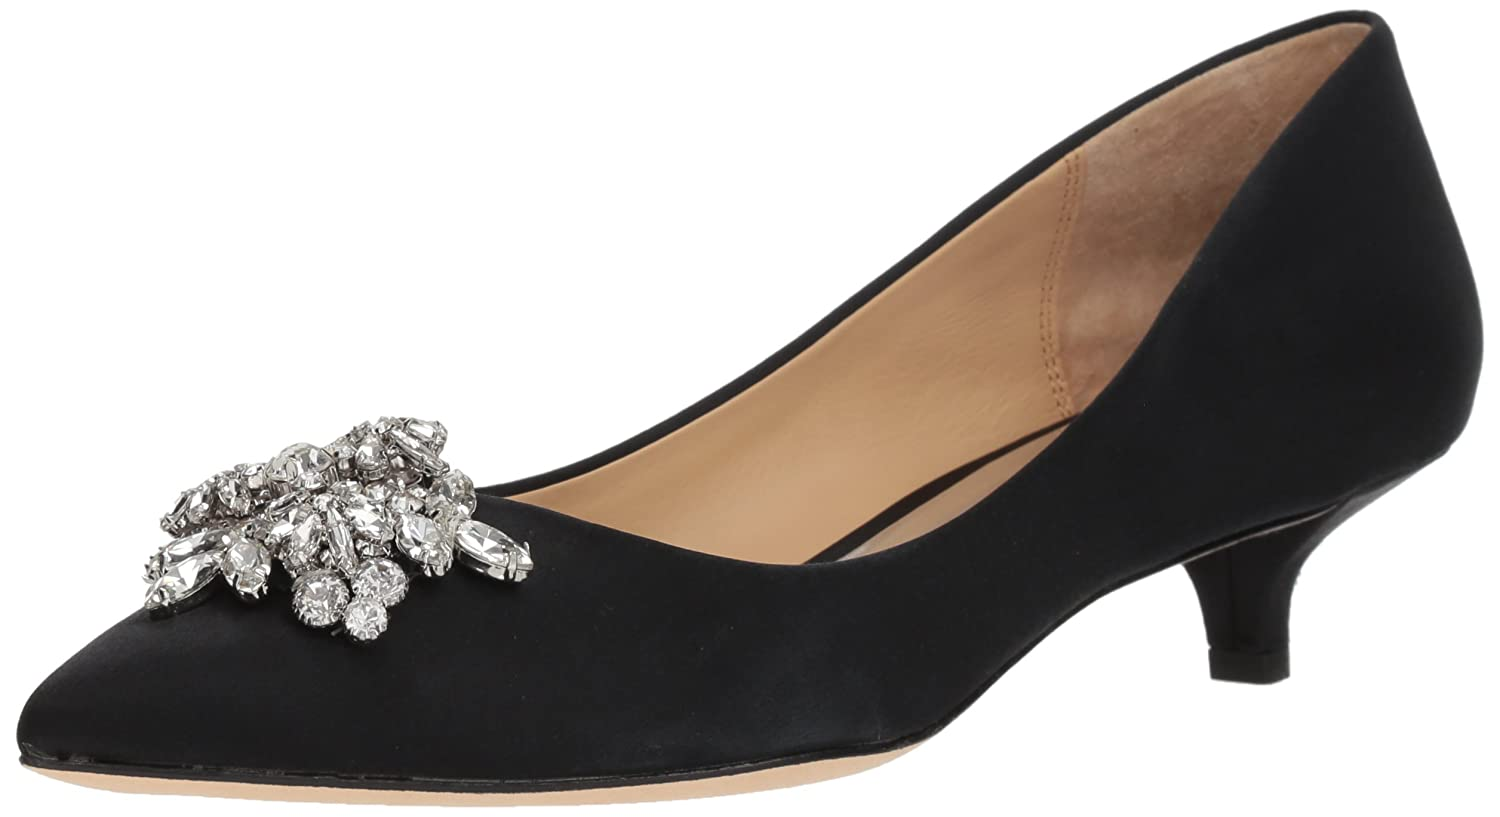 Badgley Mischka Womens Vail Pump